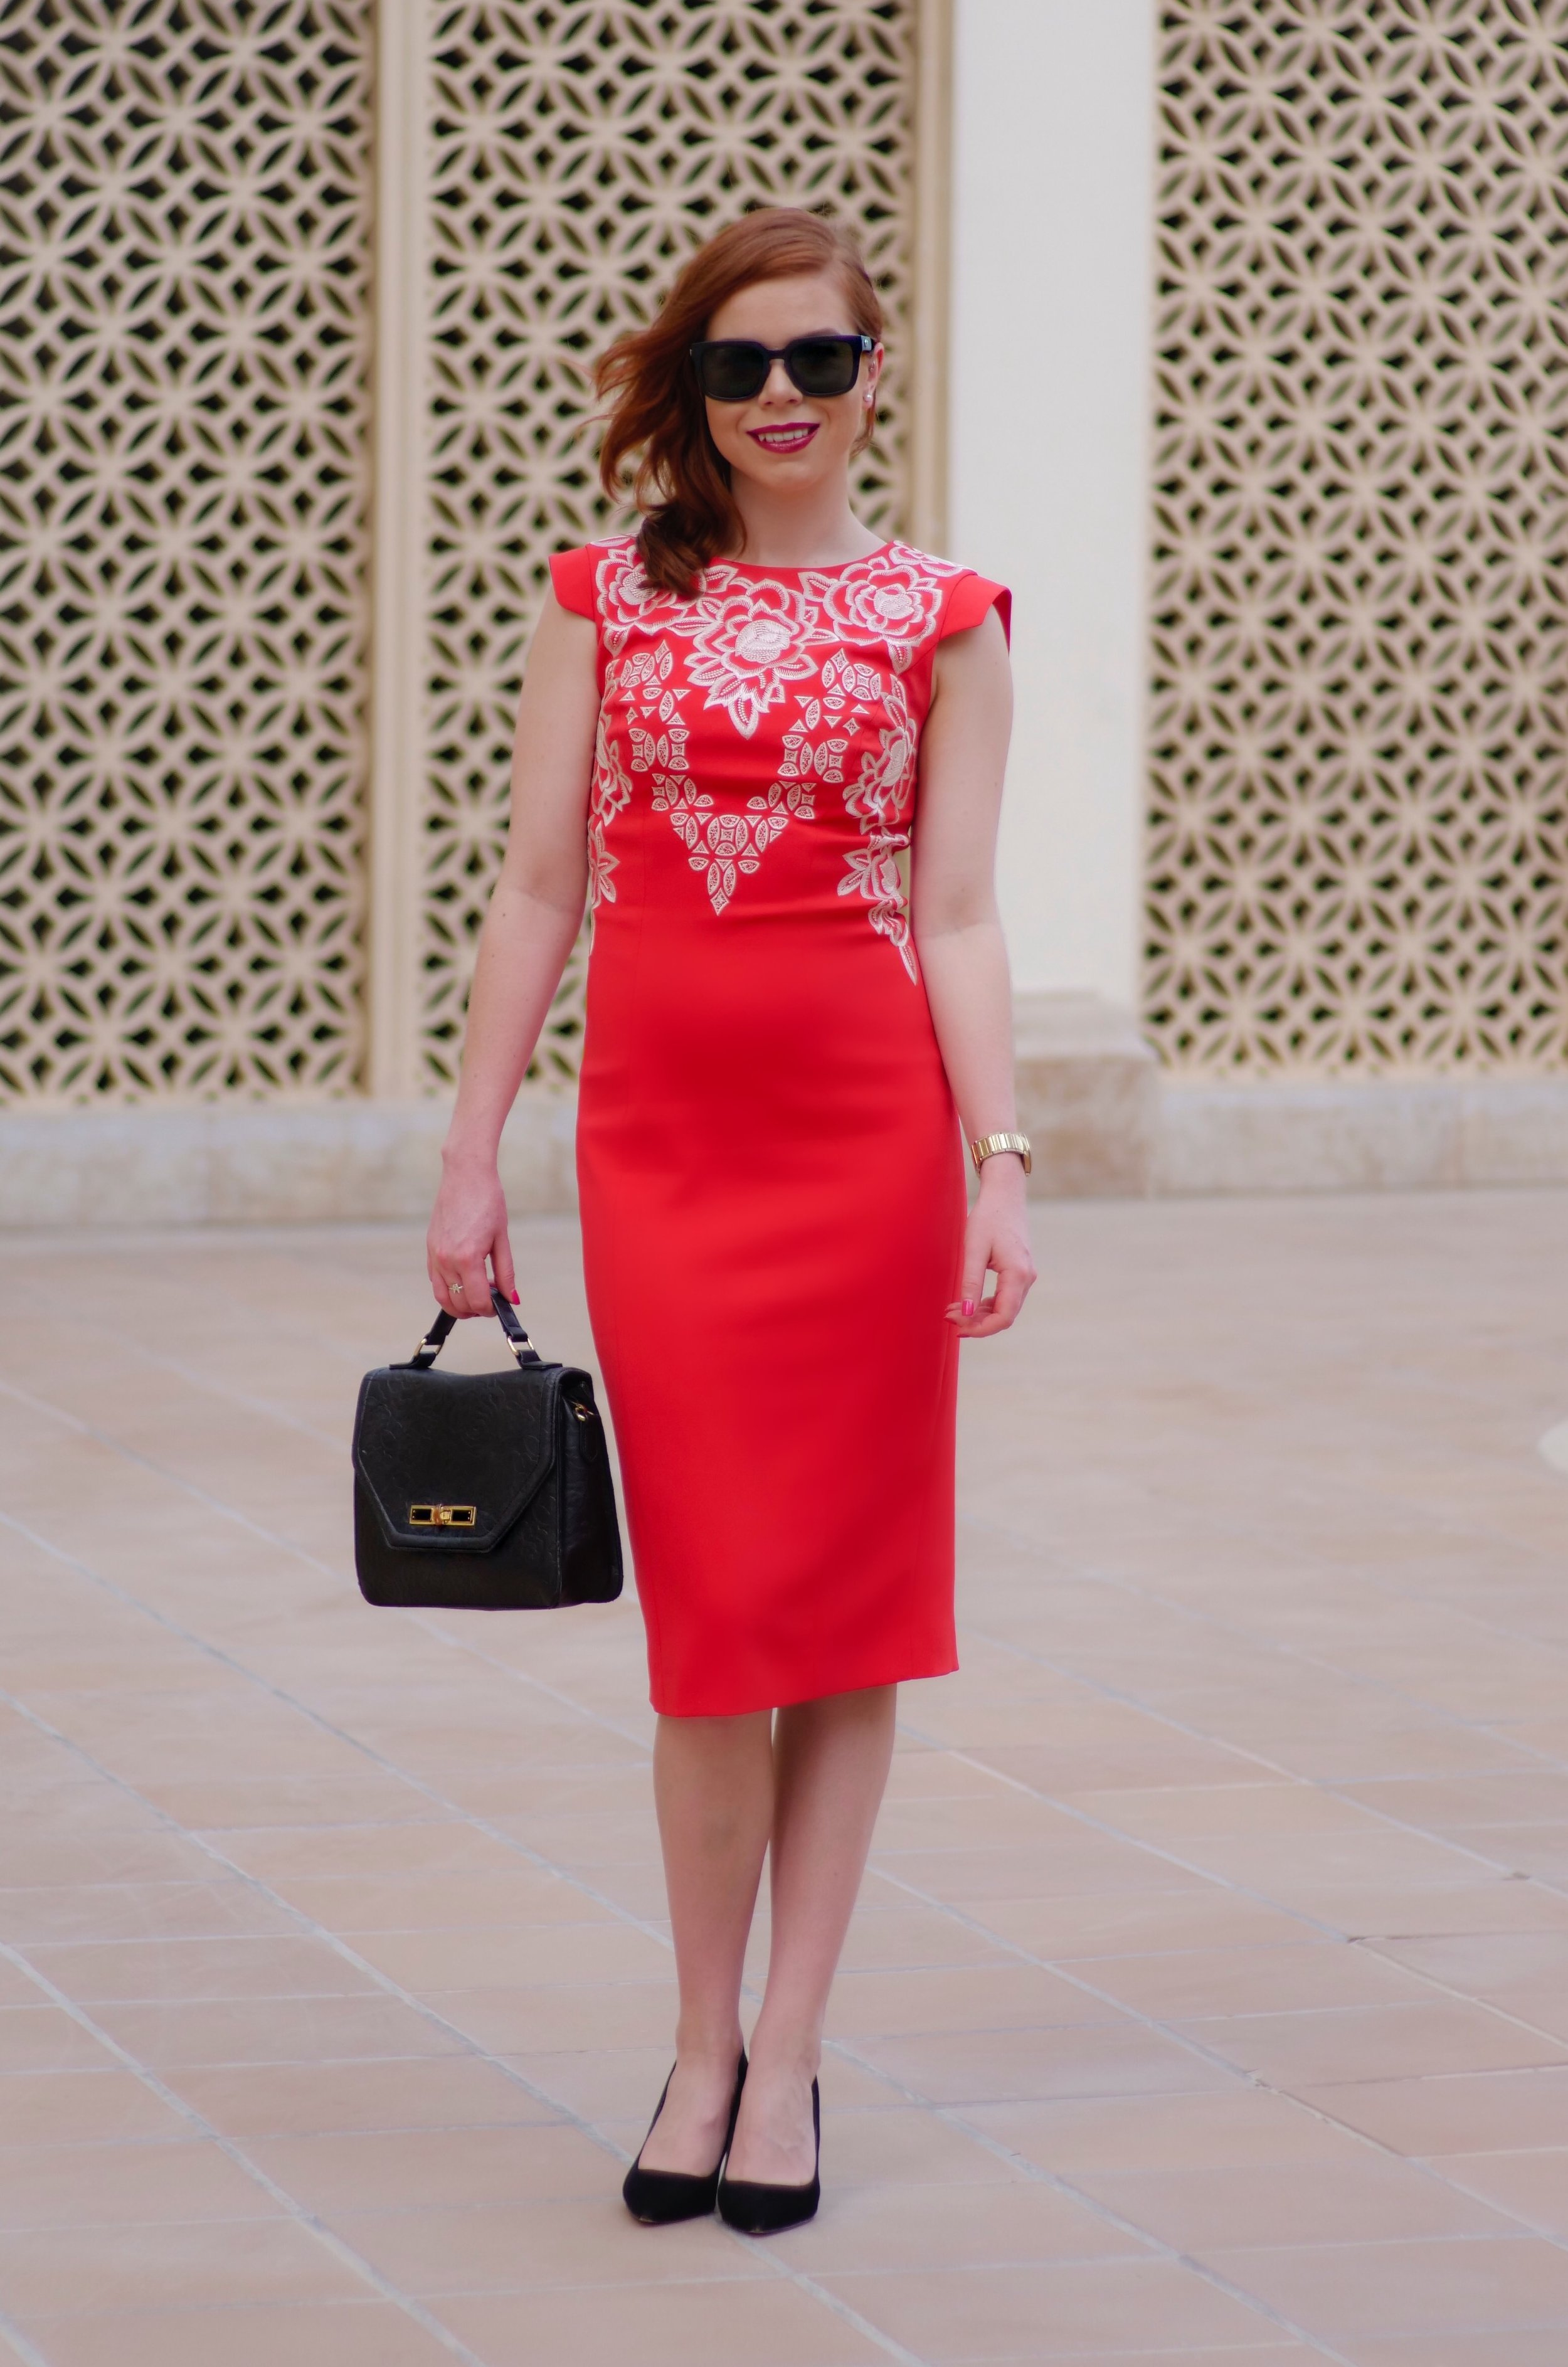 how to build a personal brand - deals in high heels - corporate lifestyle and office fashion